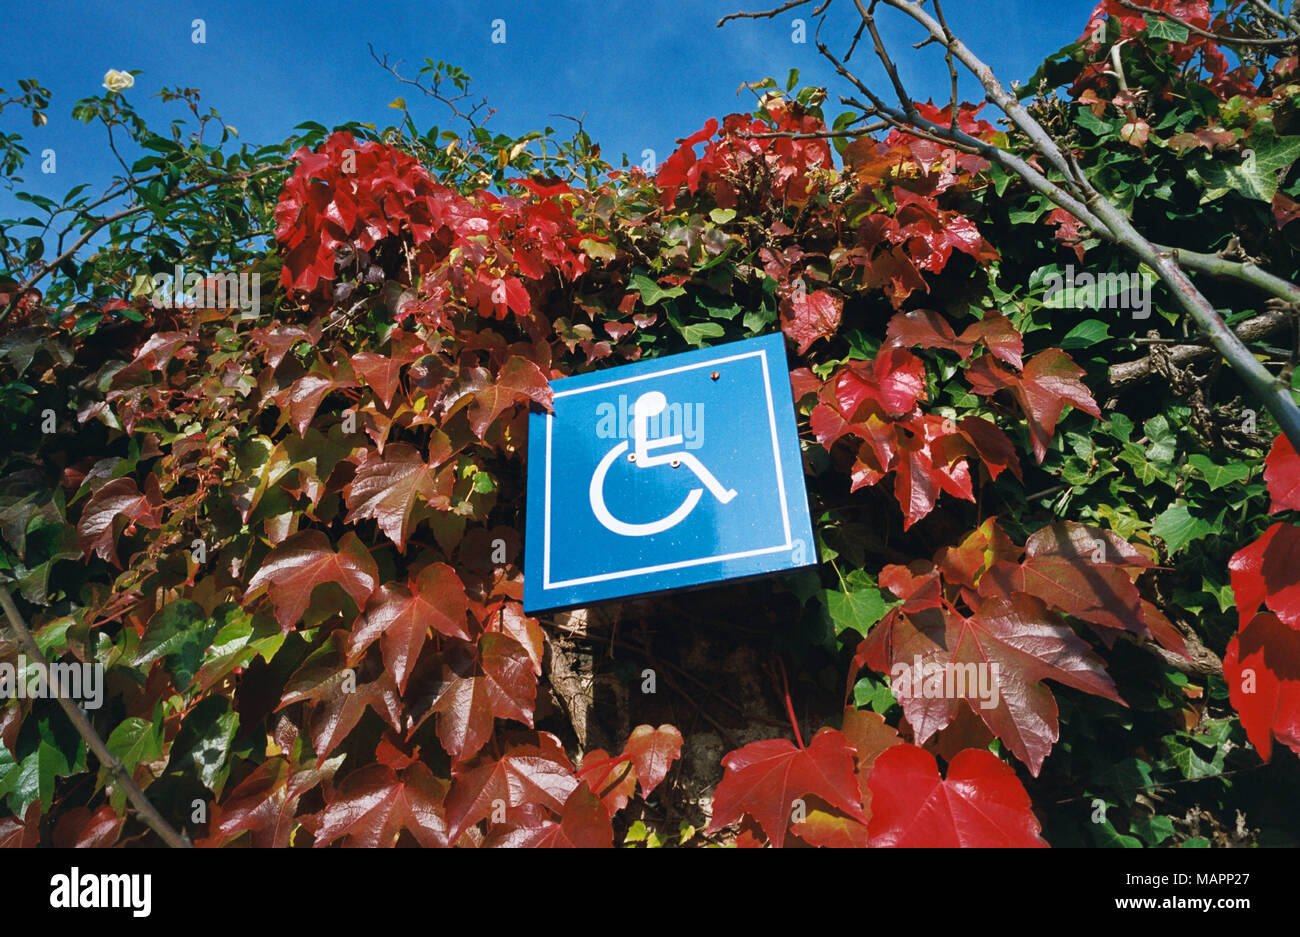 Disabled sign surrounded by Virginia creeper - Stock Image